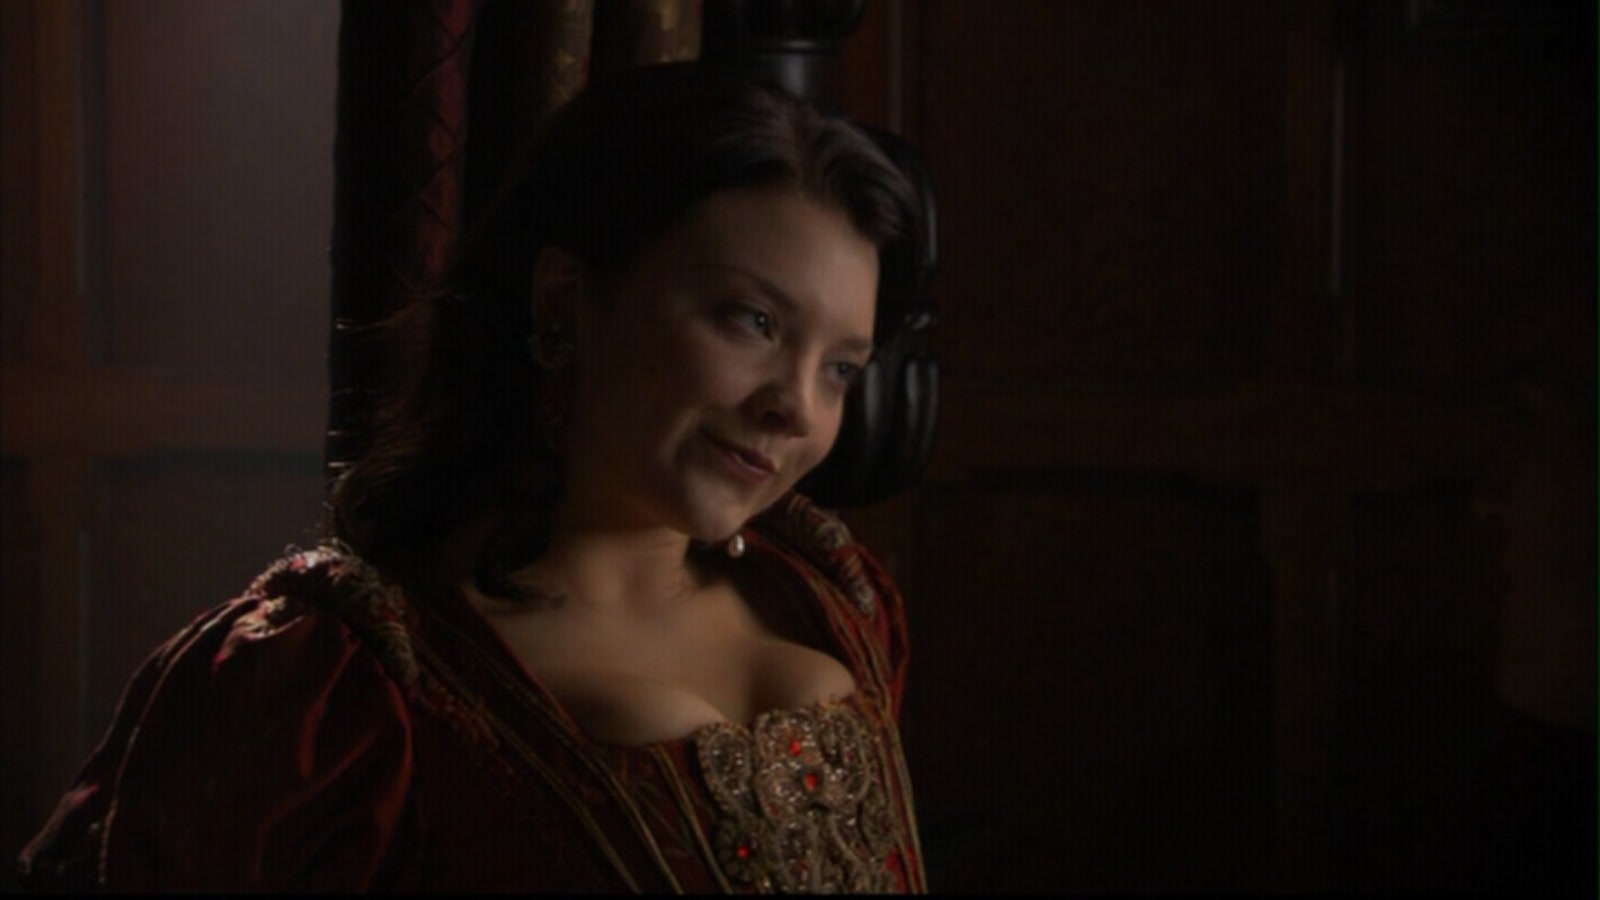 Anne Boleyn | The Tudors Season 1